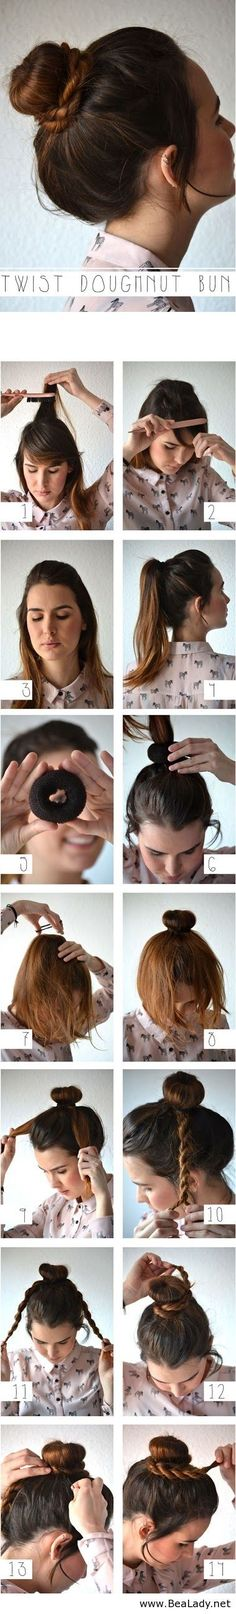 Some useful 2014 hair tutorials - BeaLady.net